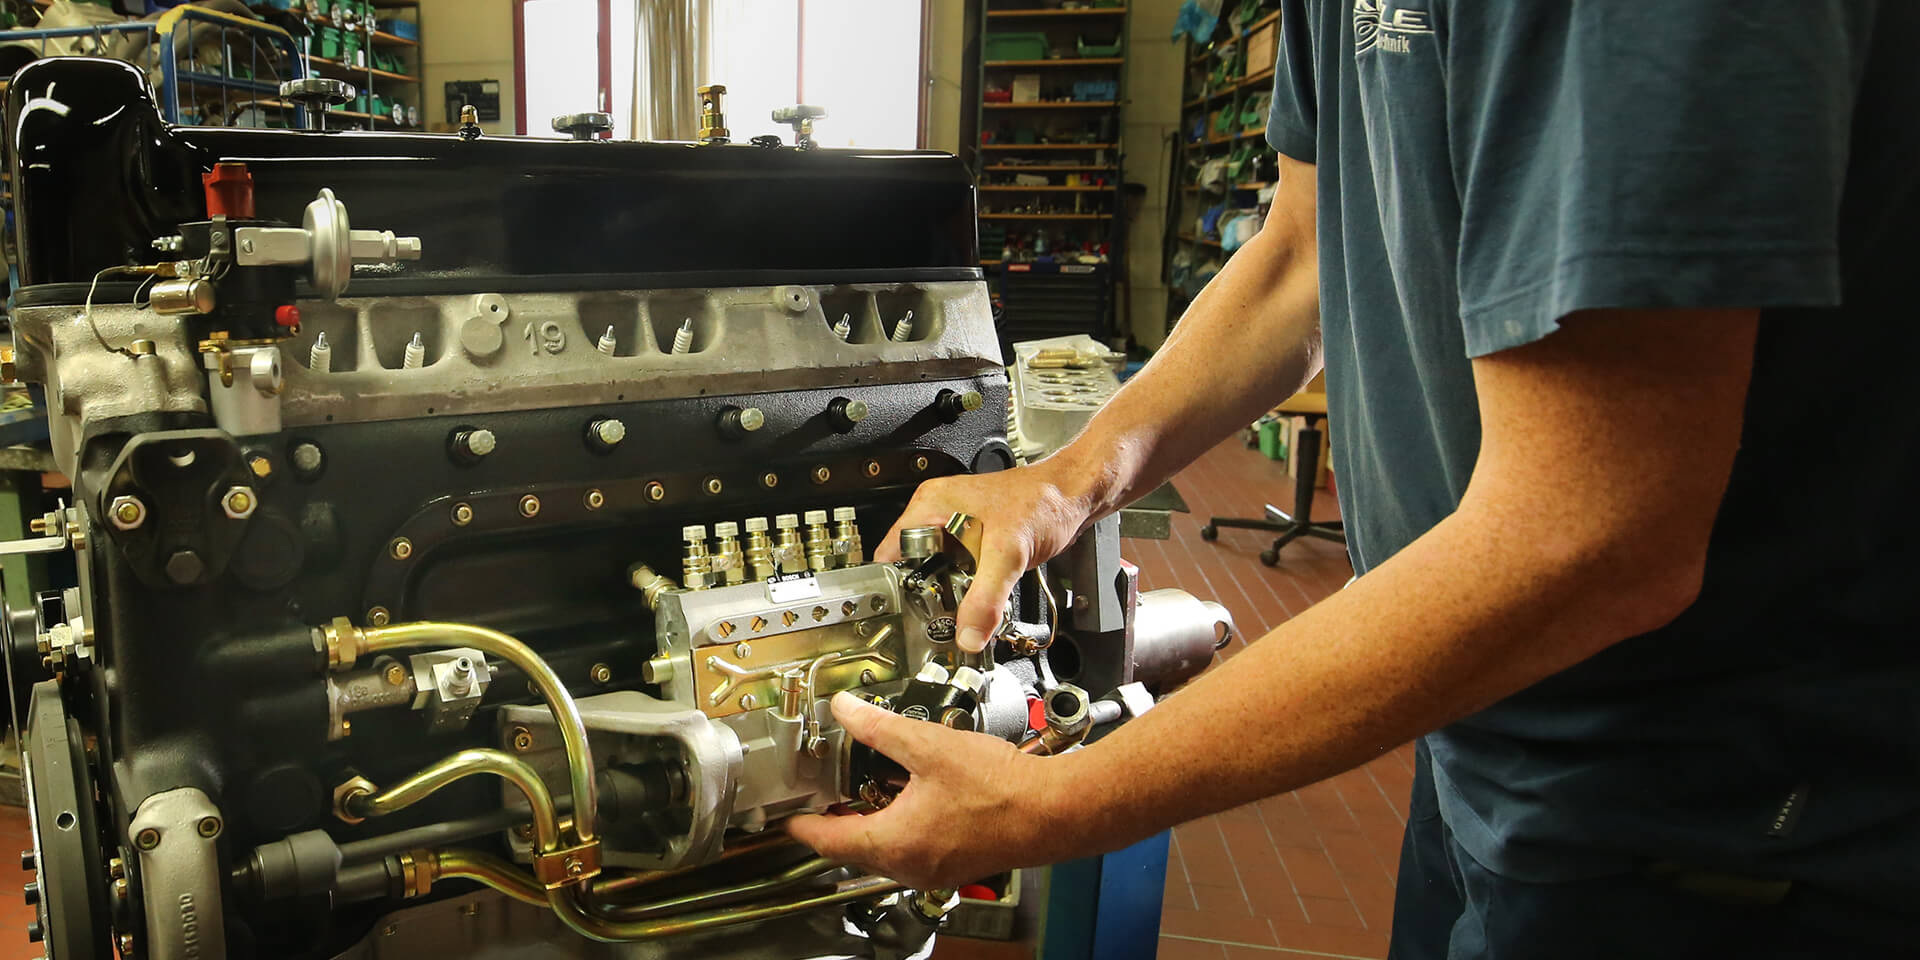 Vintage Mercedes-Benz car engine reconditioning